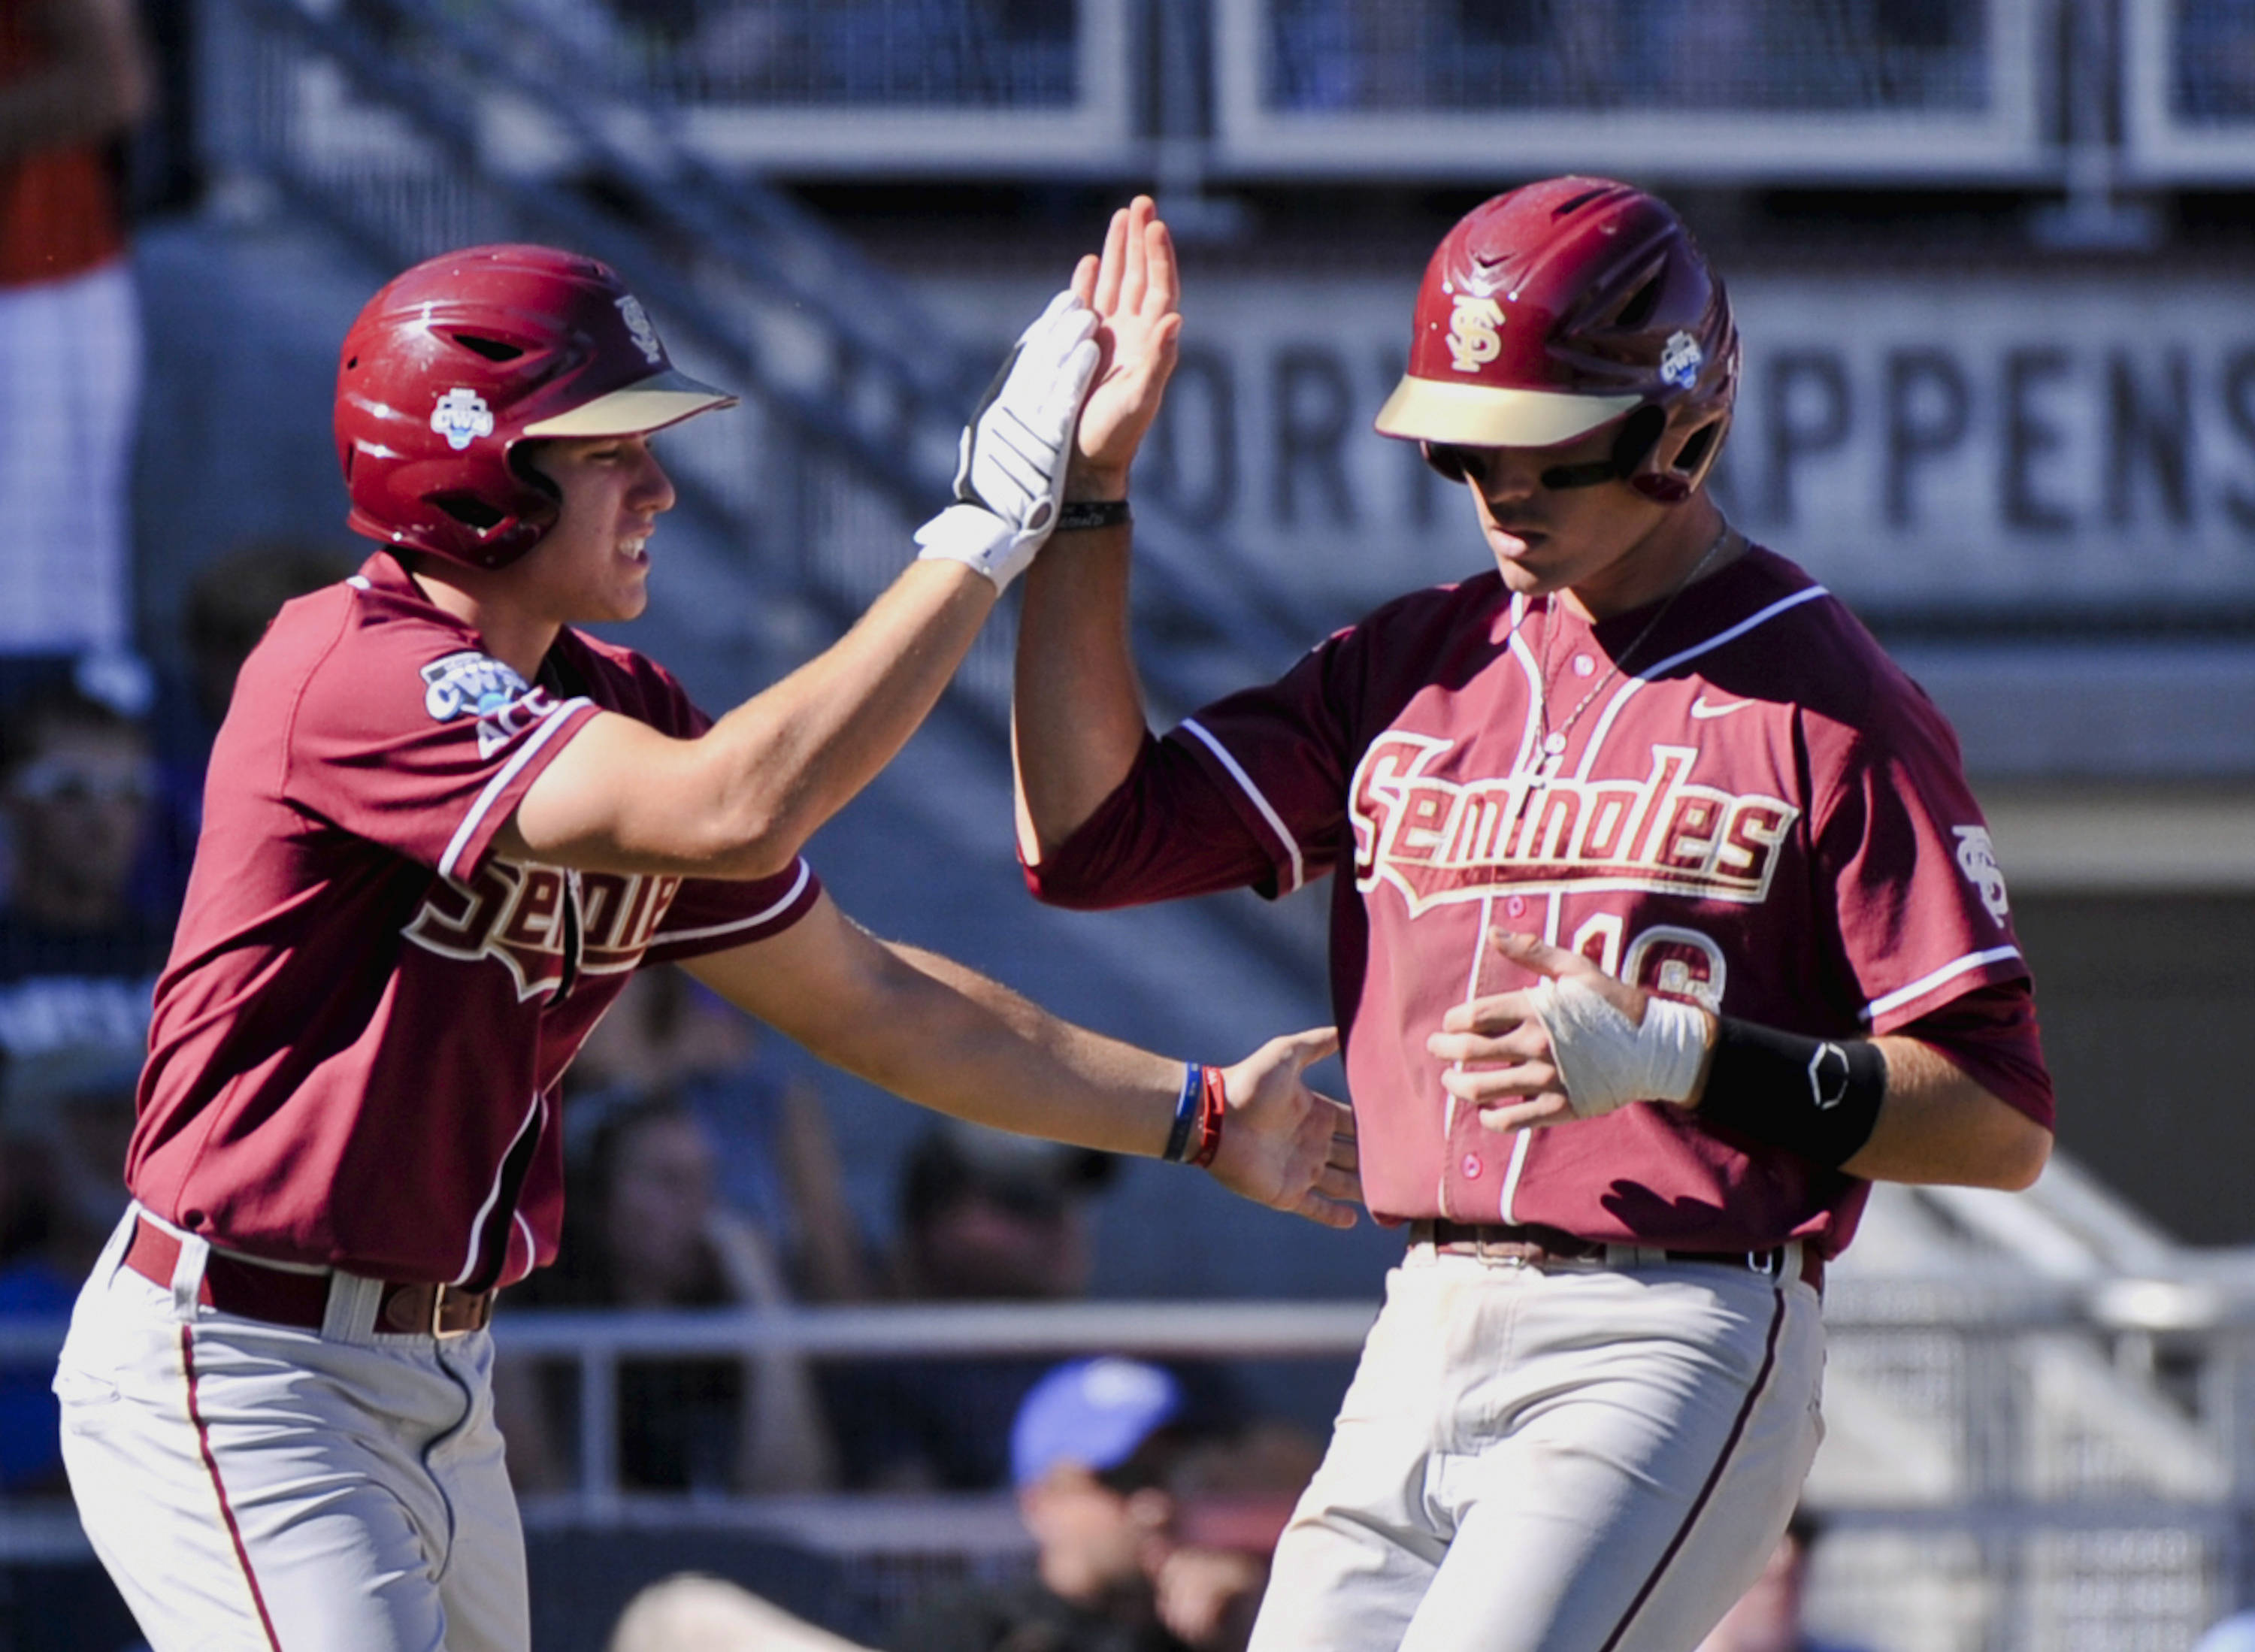 Florida State's Jayce Boyd, right, is greeted by teammate Josh Delph after Boyd scored against Arizona on a double hit by Justin Gonzalez in the fourth inning. (AP Photo/Ted Kirk)